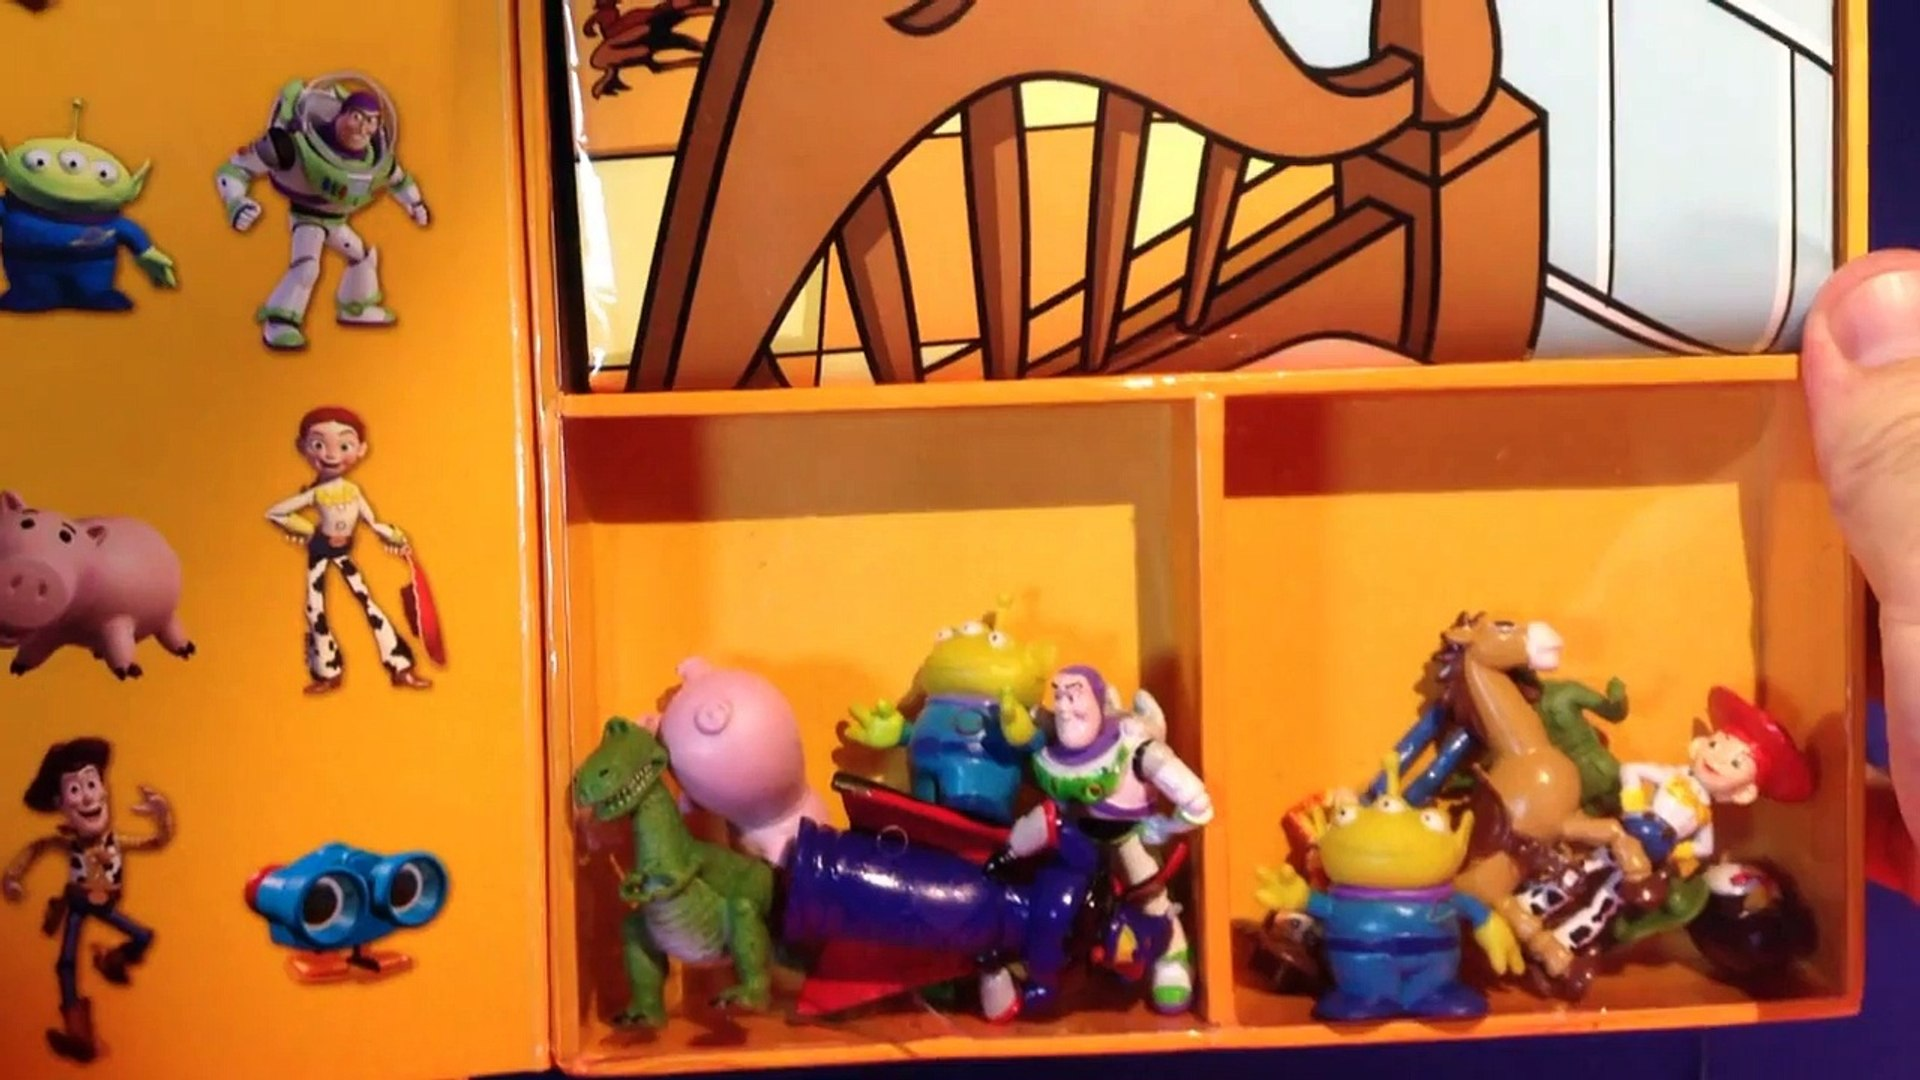 Toy Story unboxing My Busy Books! 12 Disney Pixar Toy Story Figures with Storybook and Playmat!